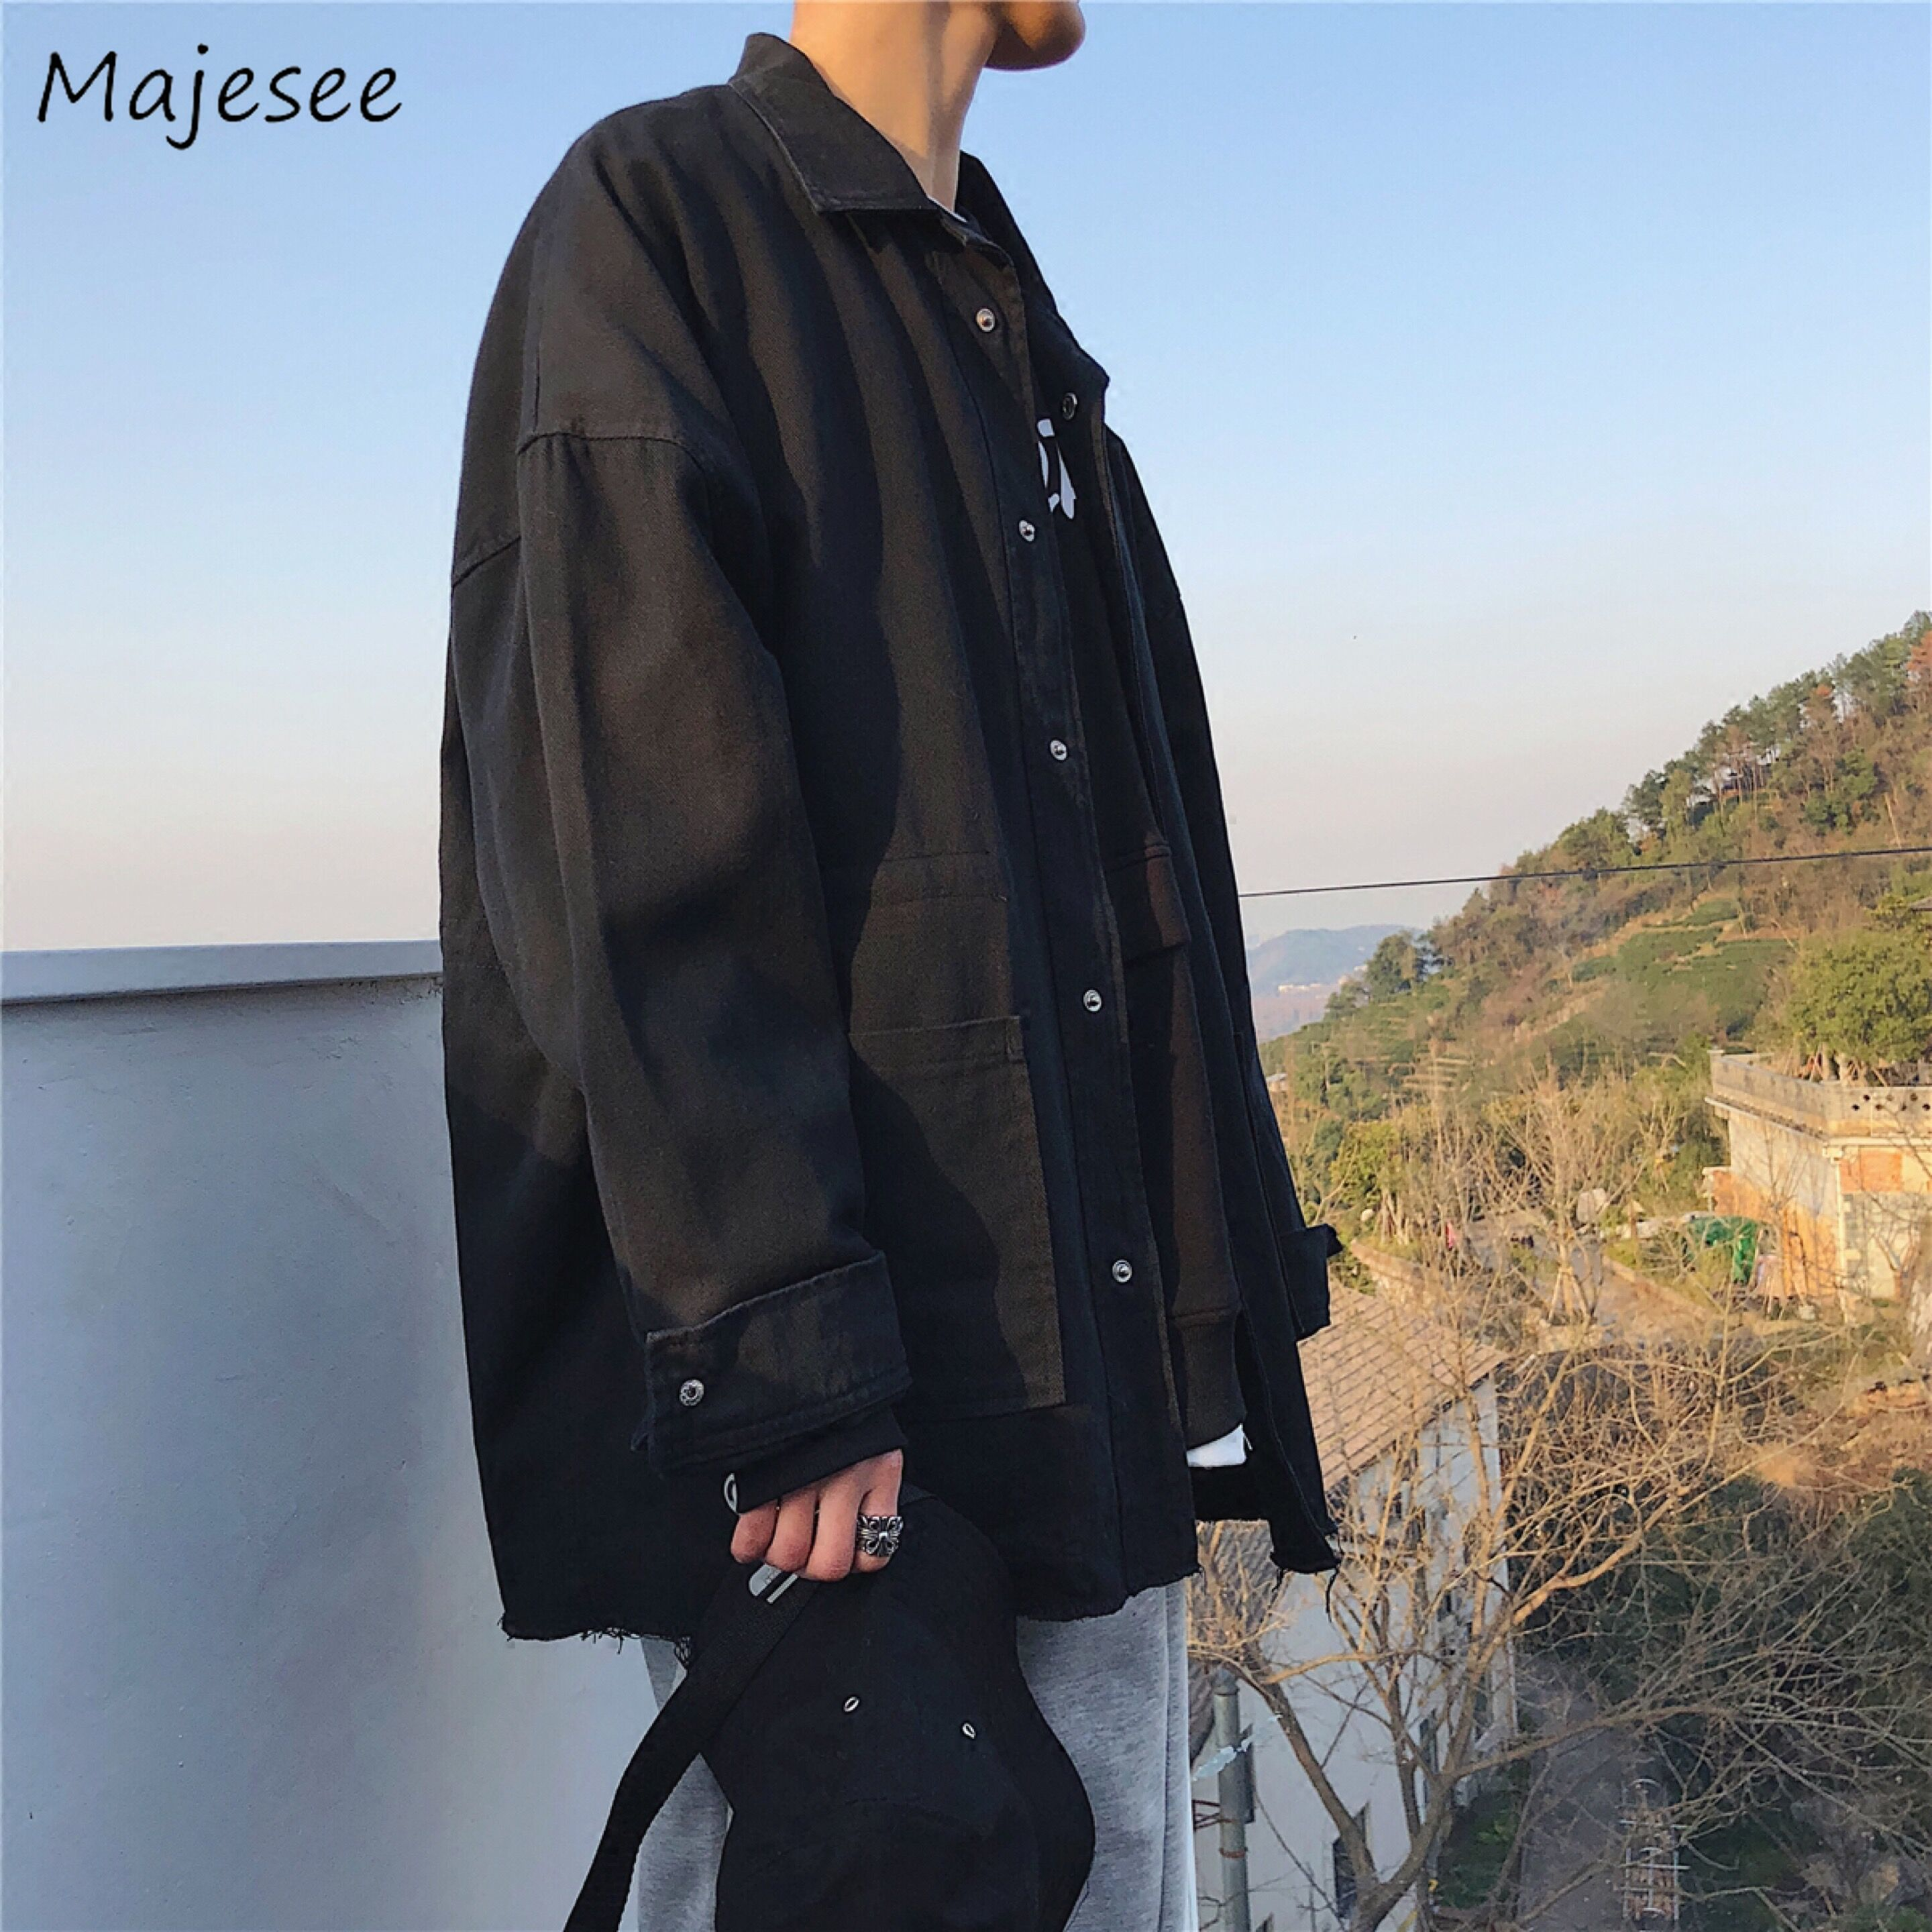 Big Size Men Jacket Denim Single Breasted Oversize Vintage Clothes Japanese Streetwear Mens Jackets And Coats Males Black Coat